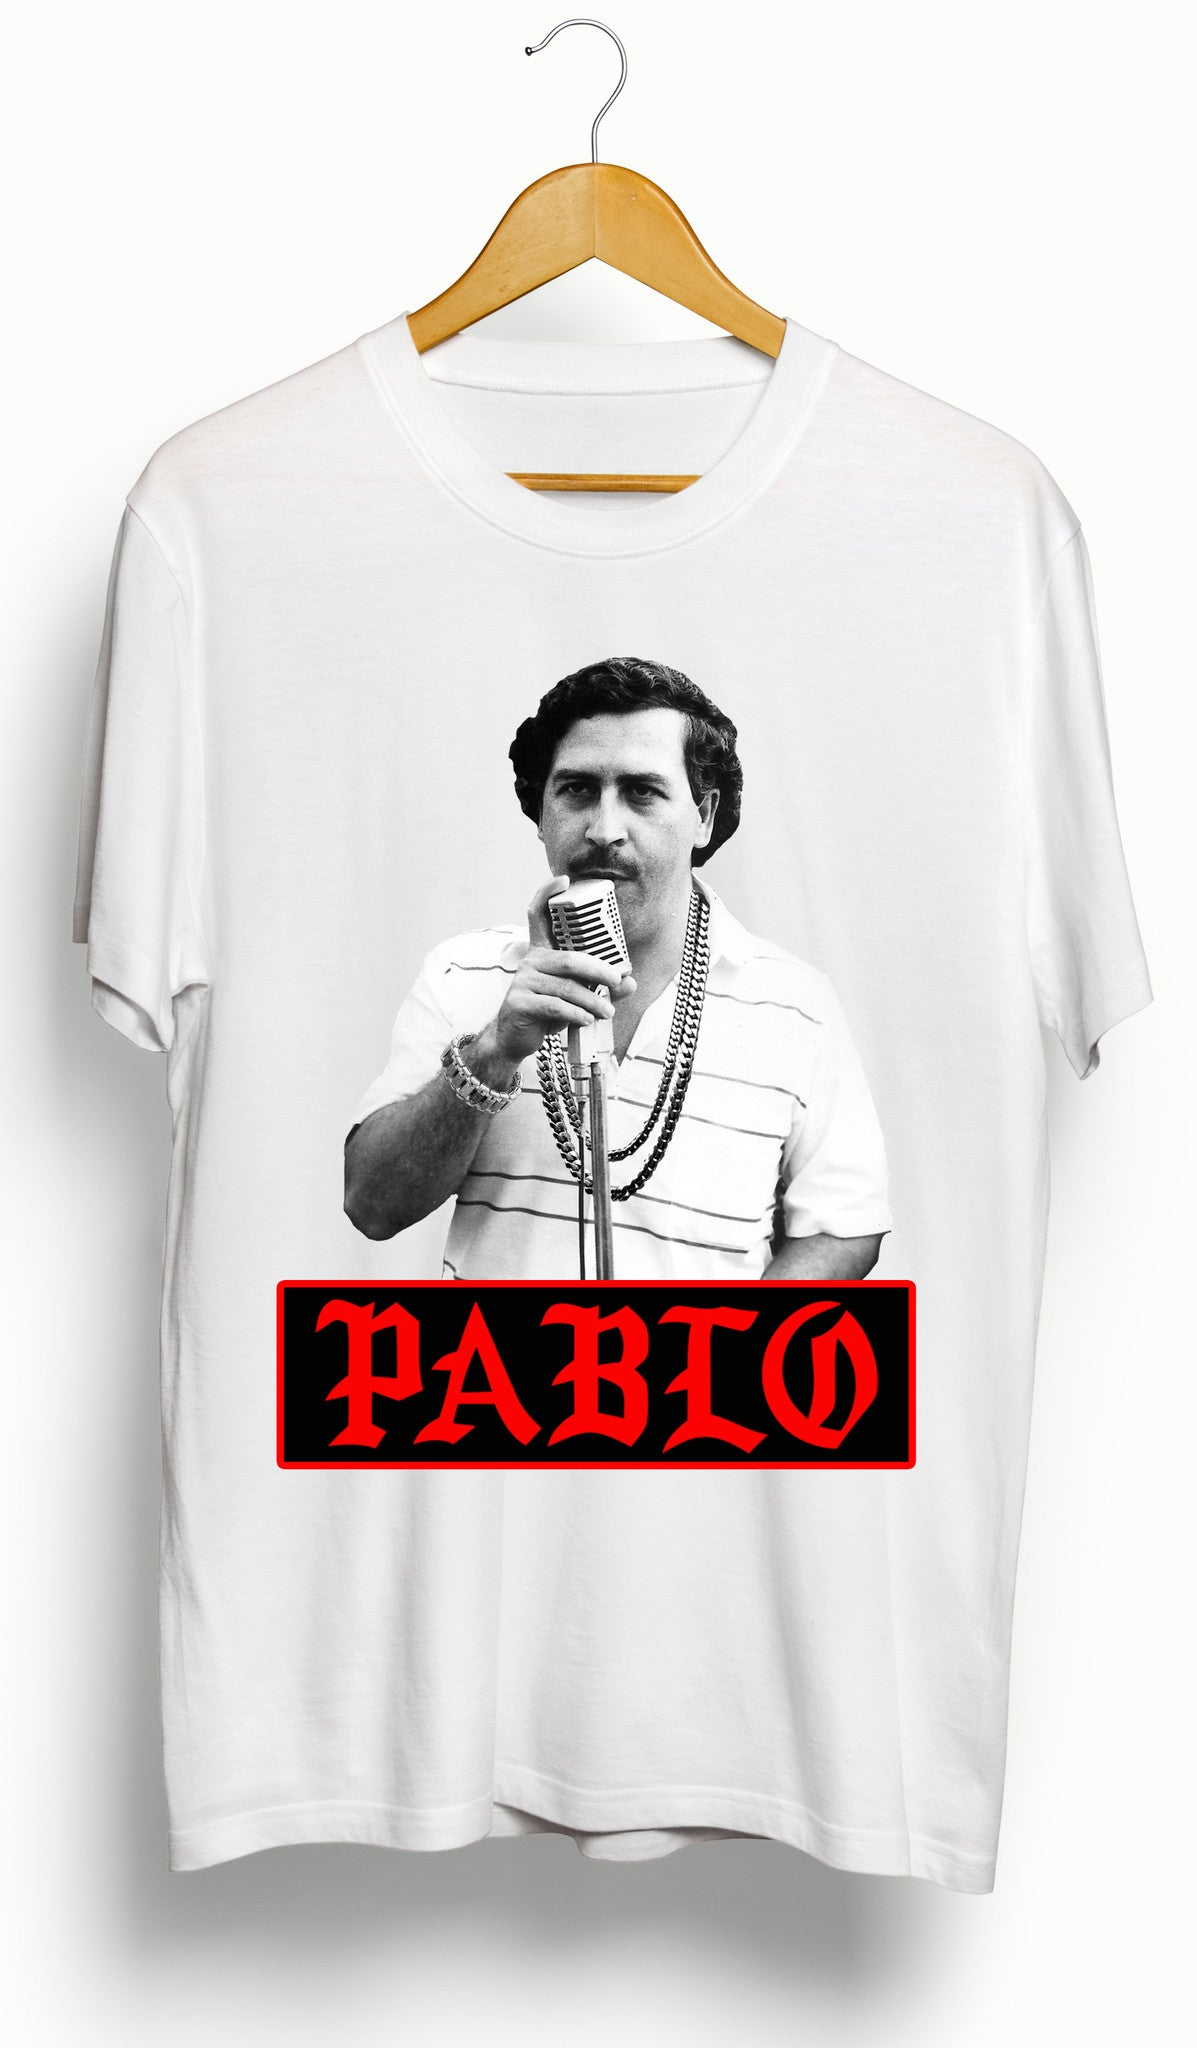 Pablo Escobar/Life of Pablo/Yeezy/I Feel Like Pablo T-Shirt - Ourt